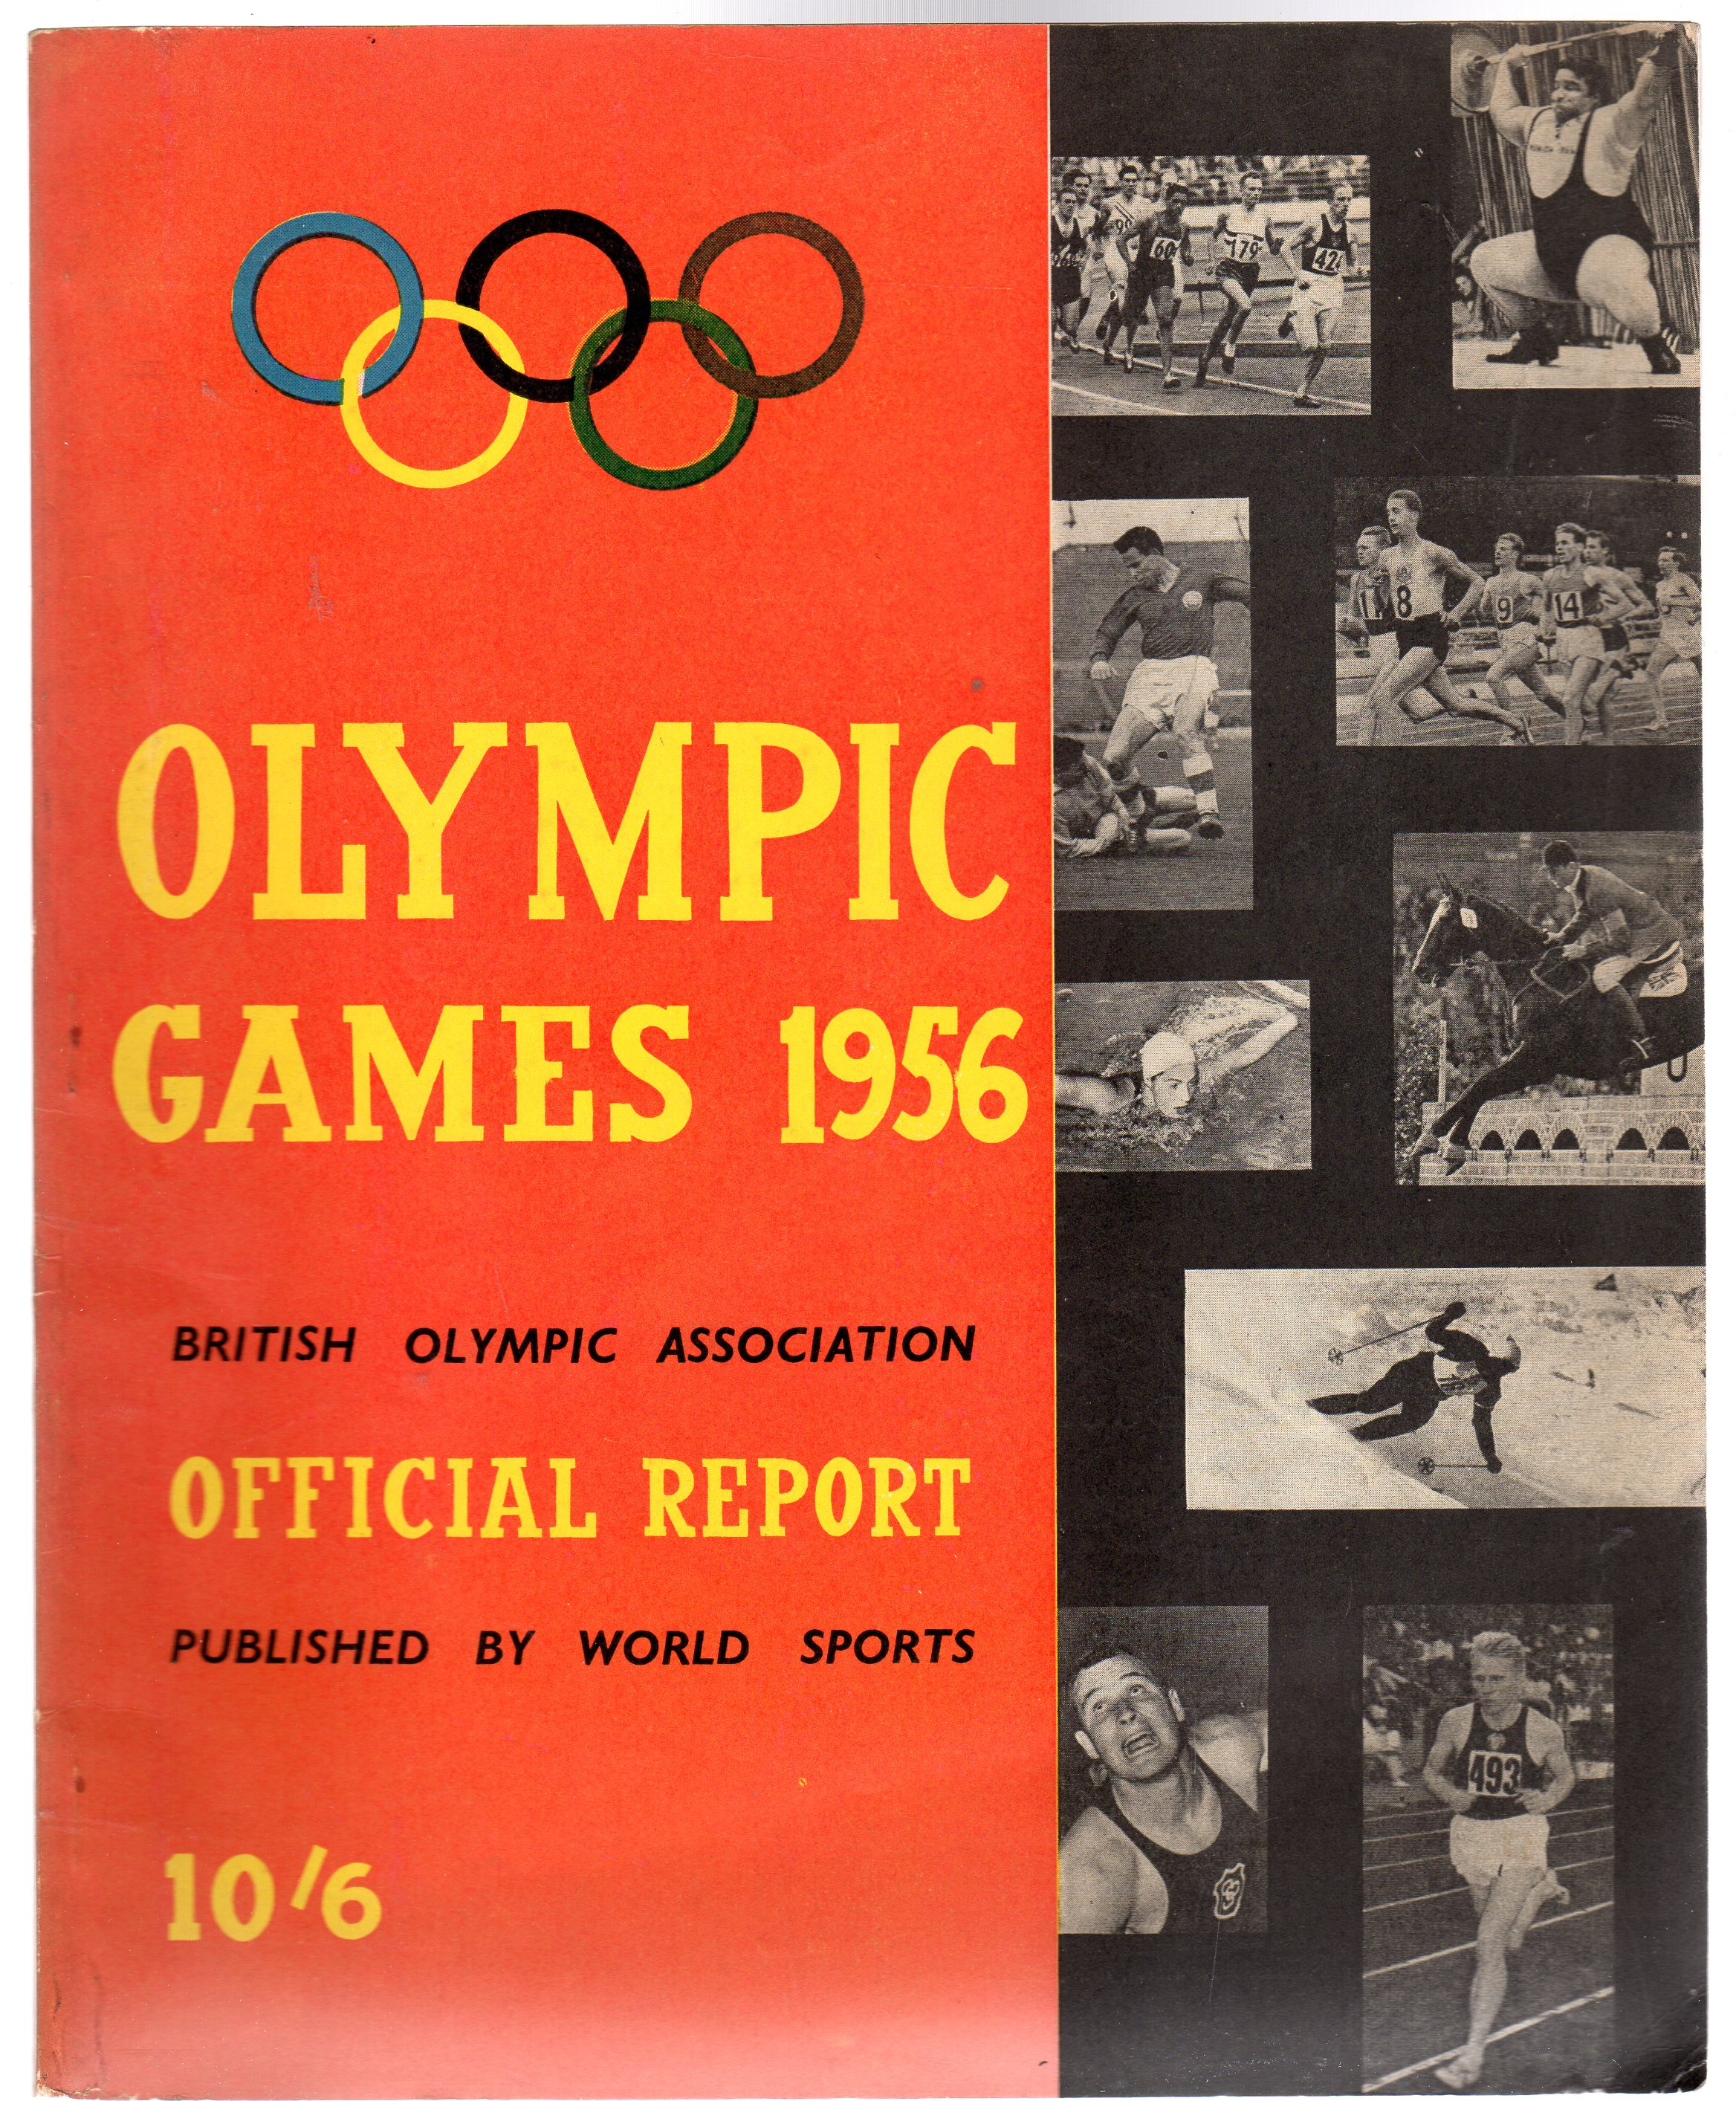 Image for British Olympic Assocation, Official Report of the Olympic Games 1956